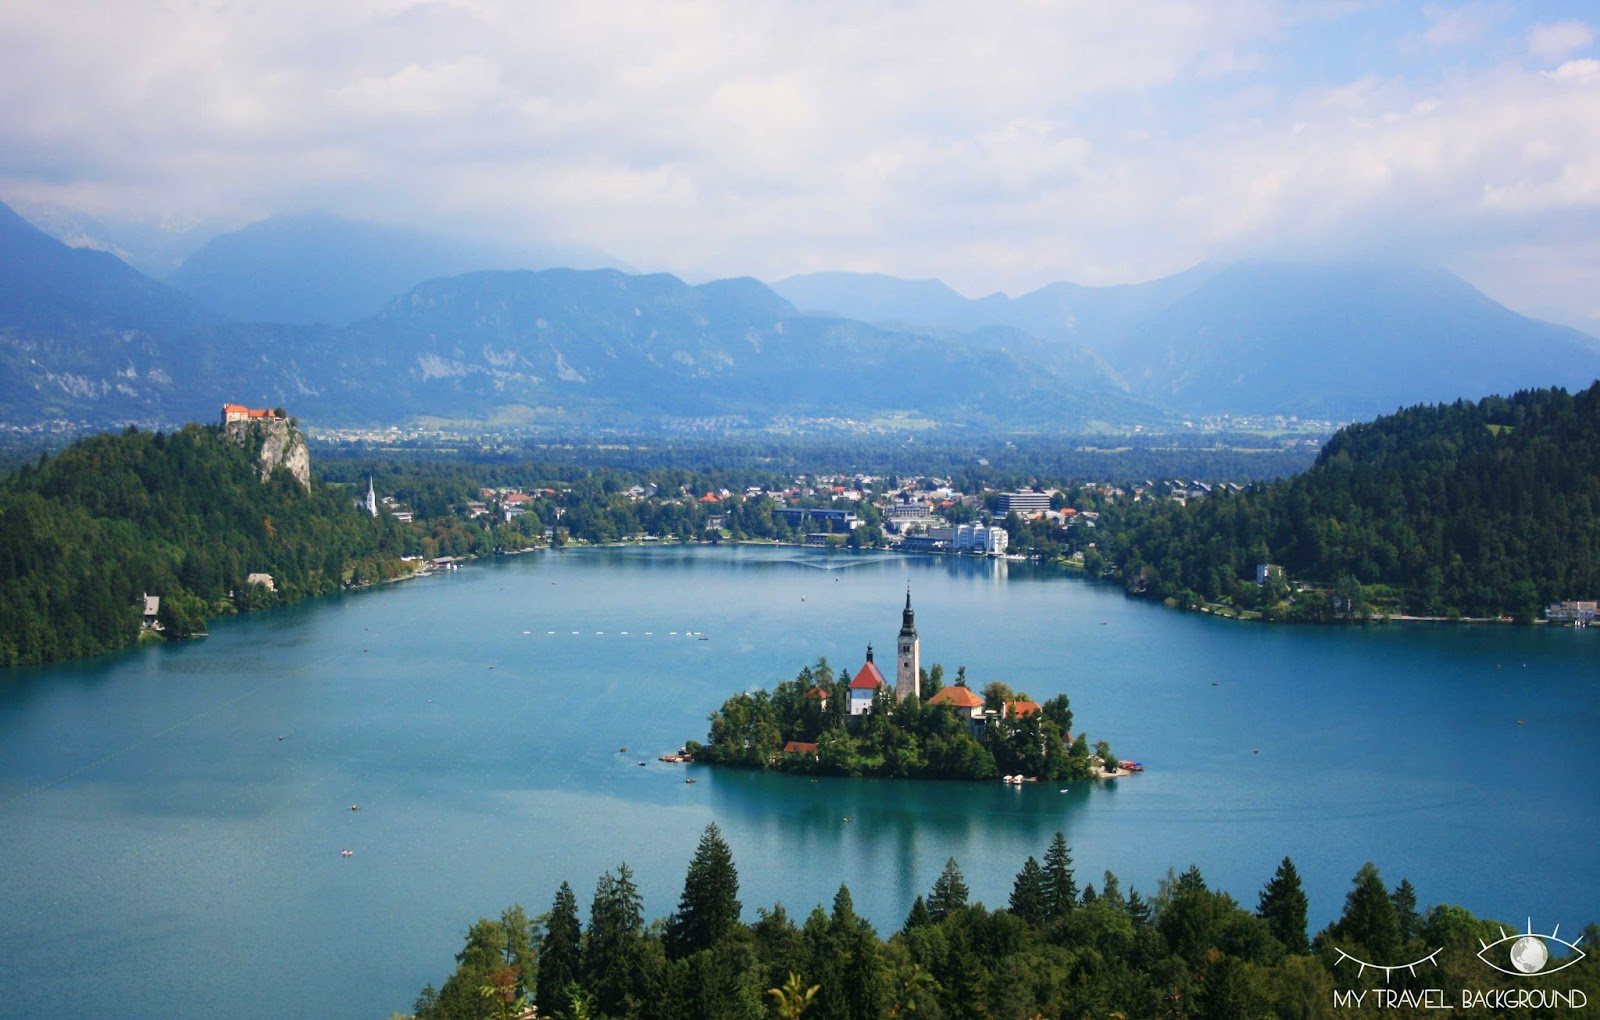 My Travel Background : top 5 de mes souvenirs 2017 ! Bled Slovénie